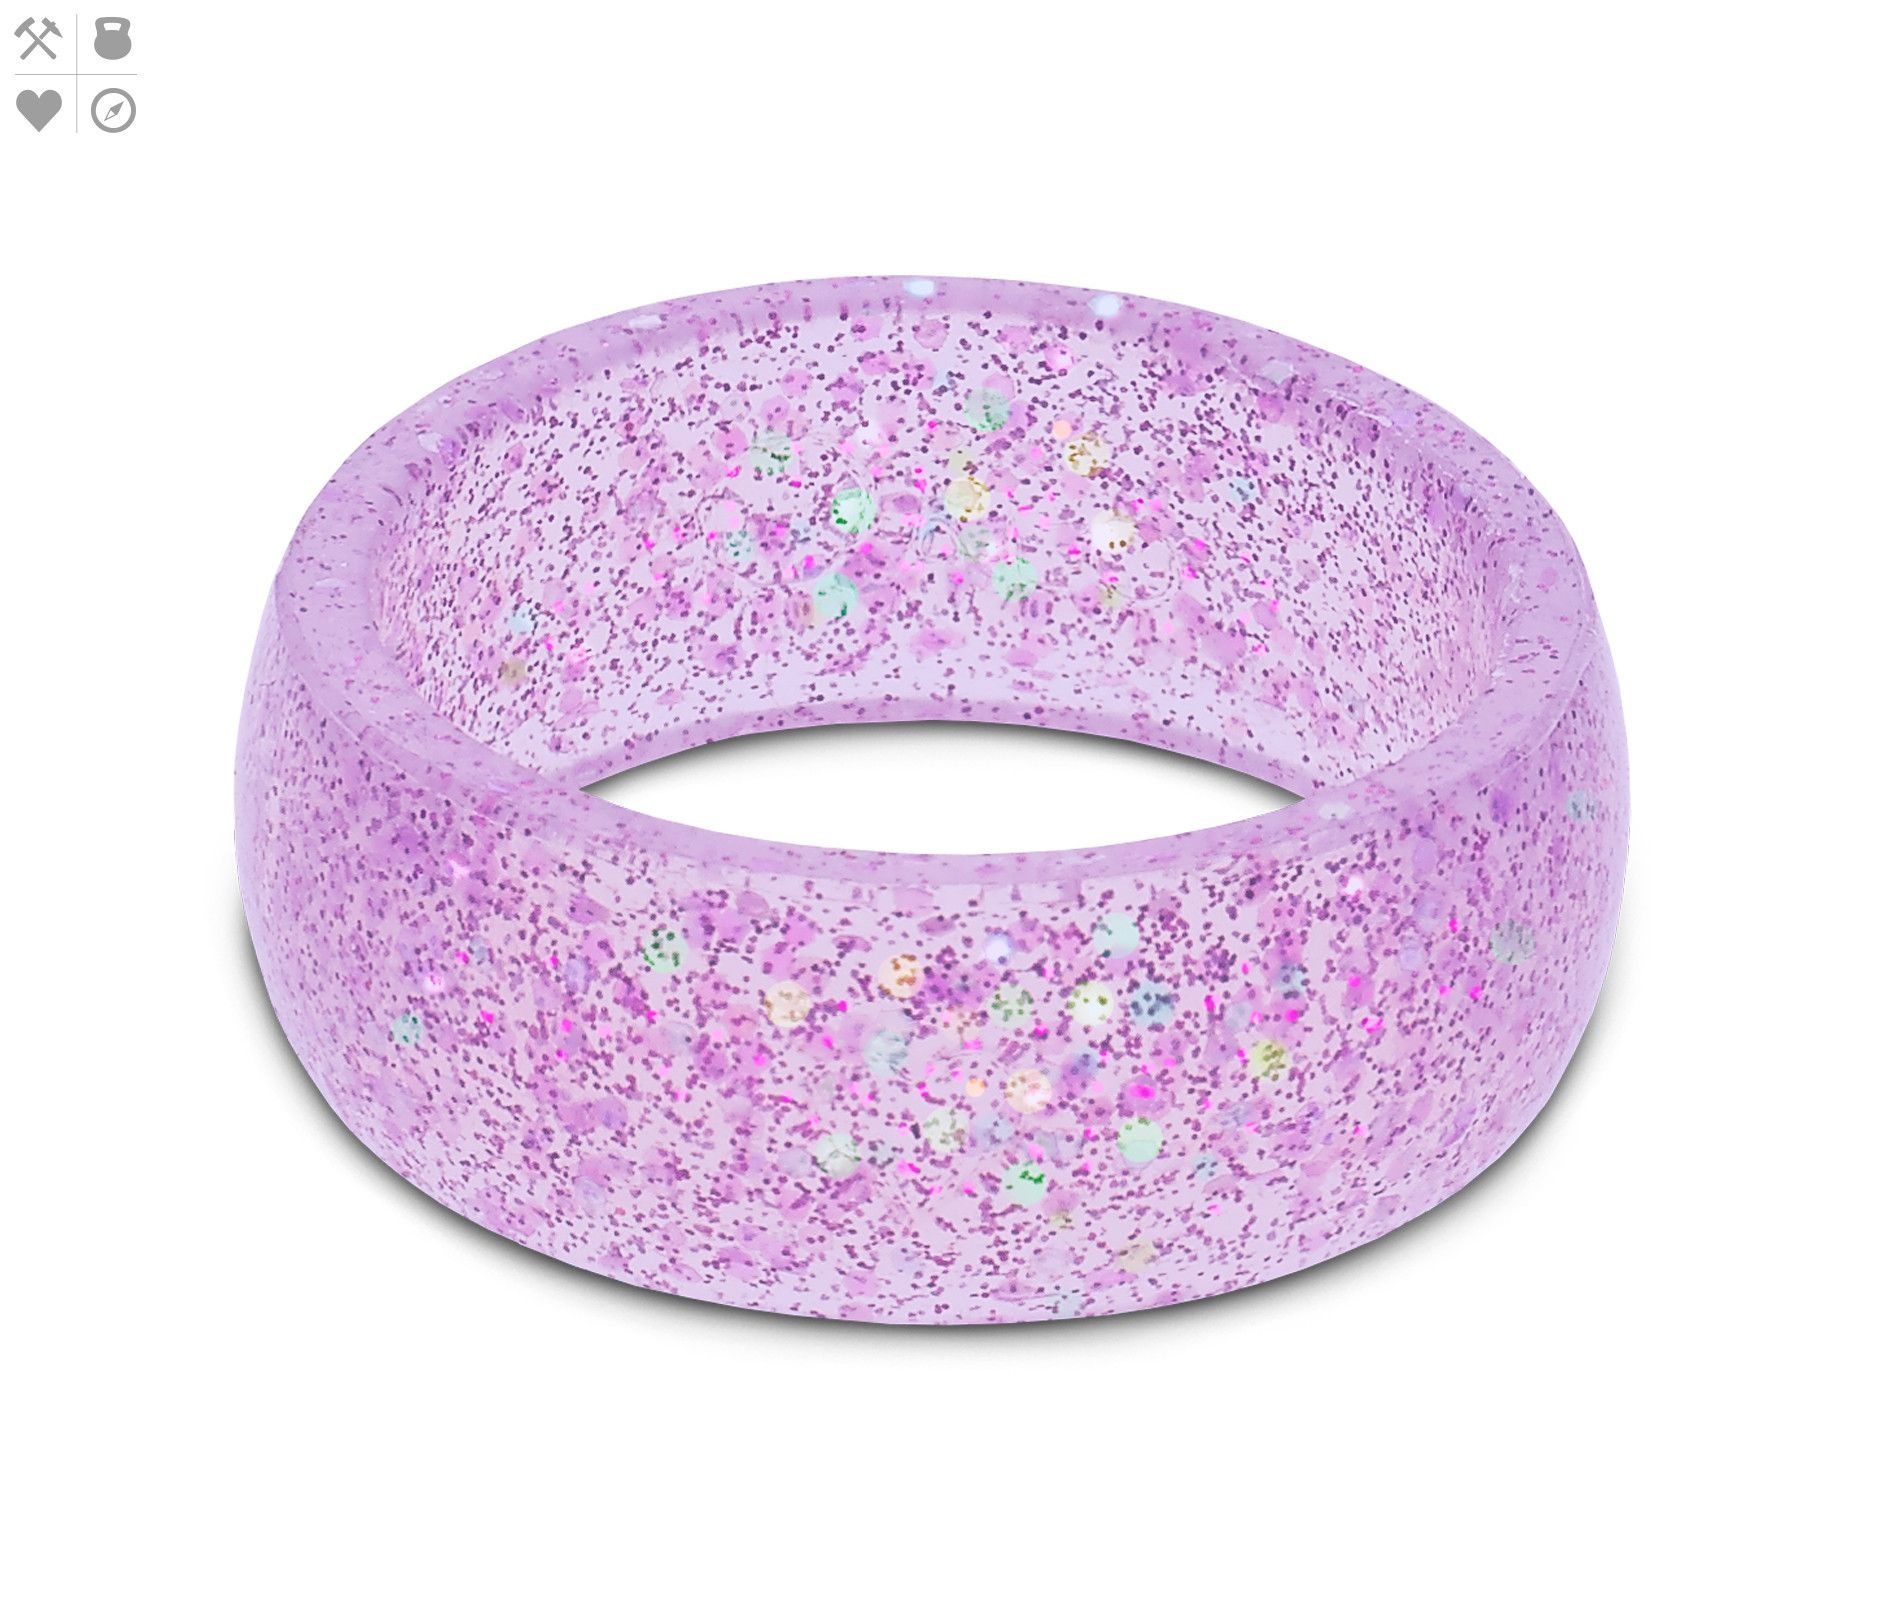 25 Awesome Silicone Wedding Band In Store Wallpaper | Wedding Junction